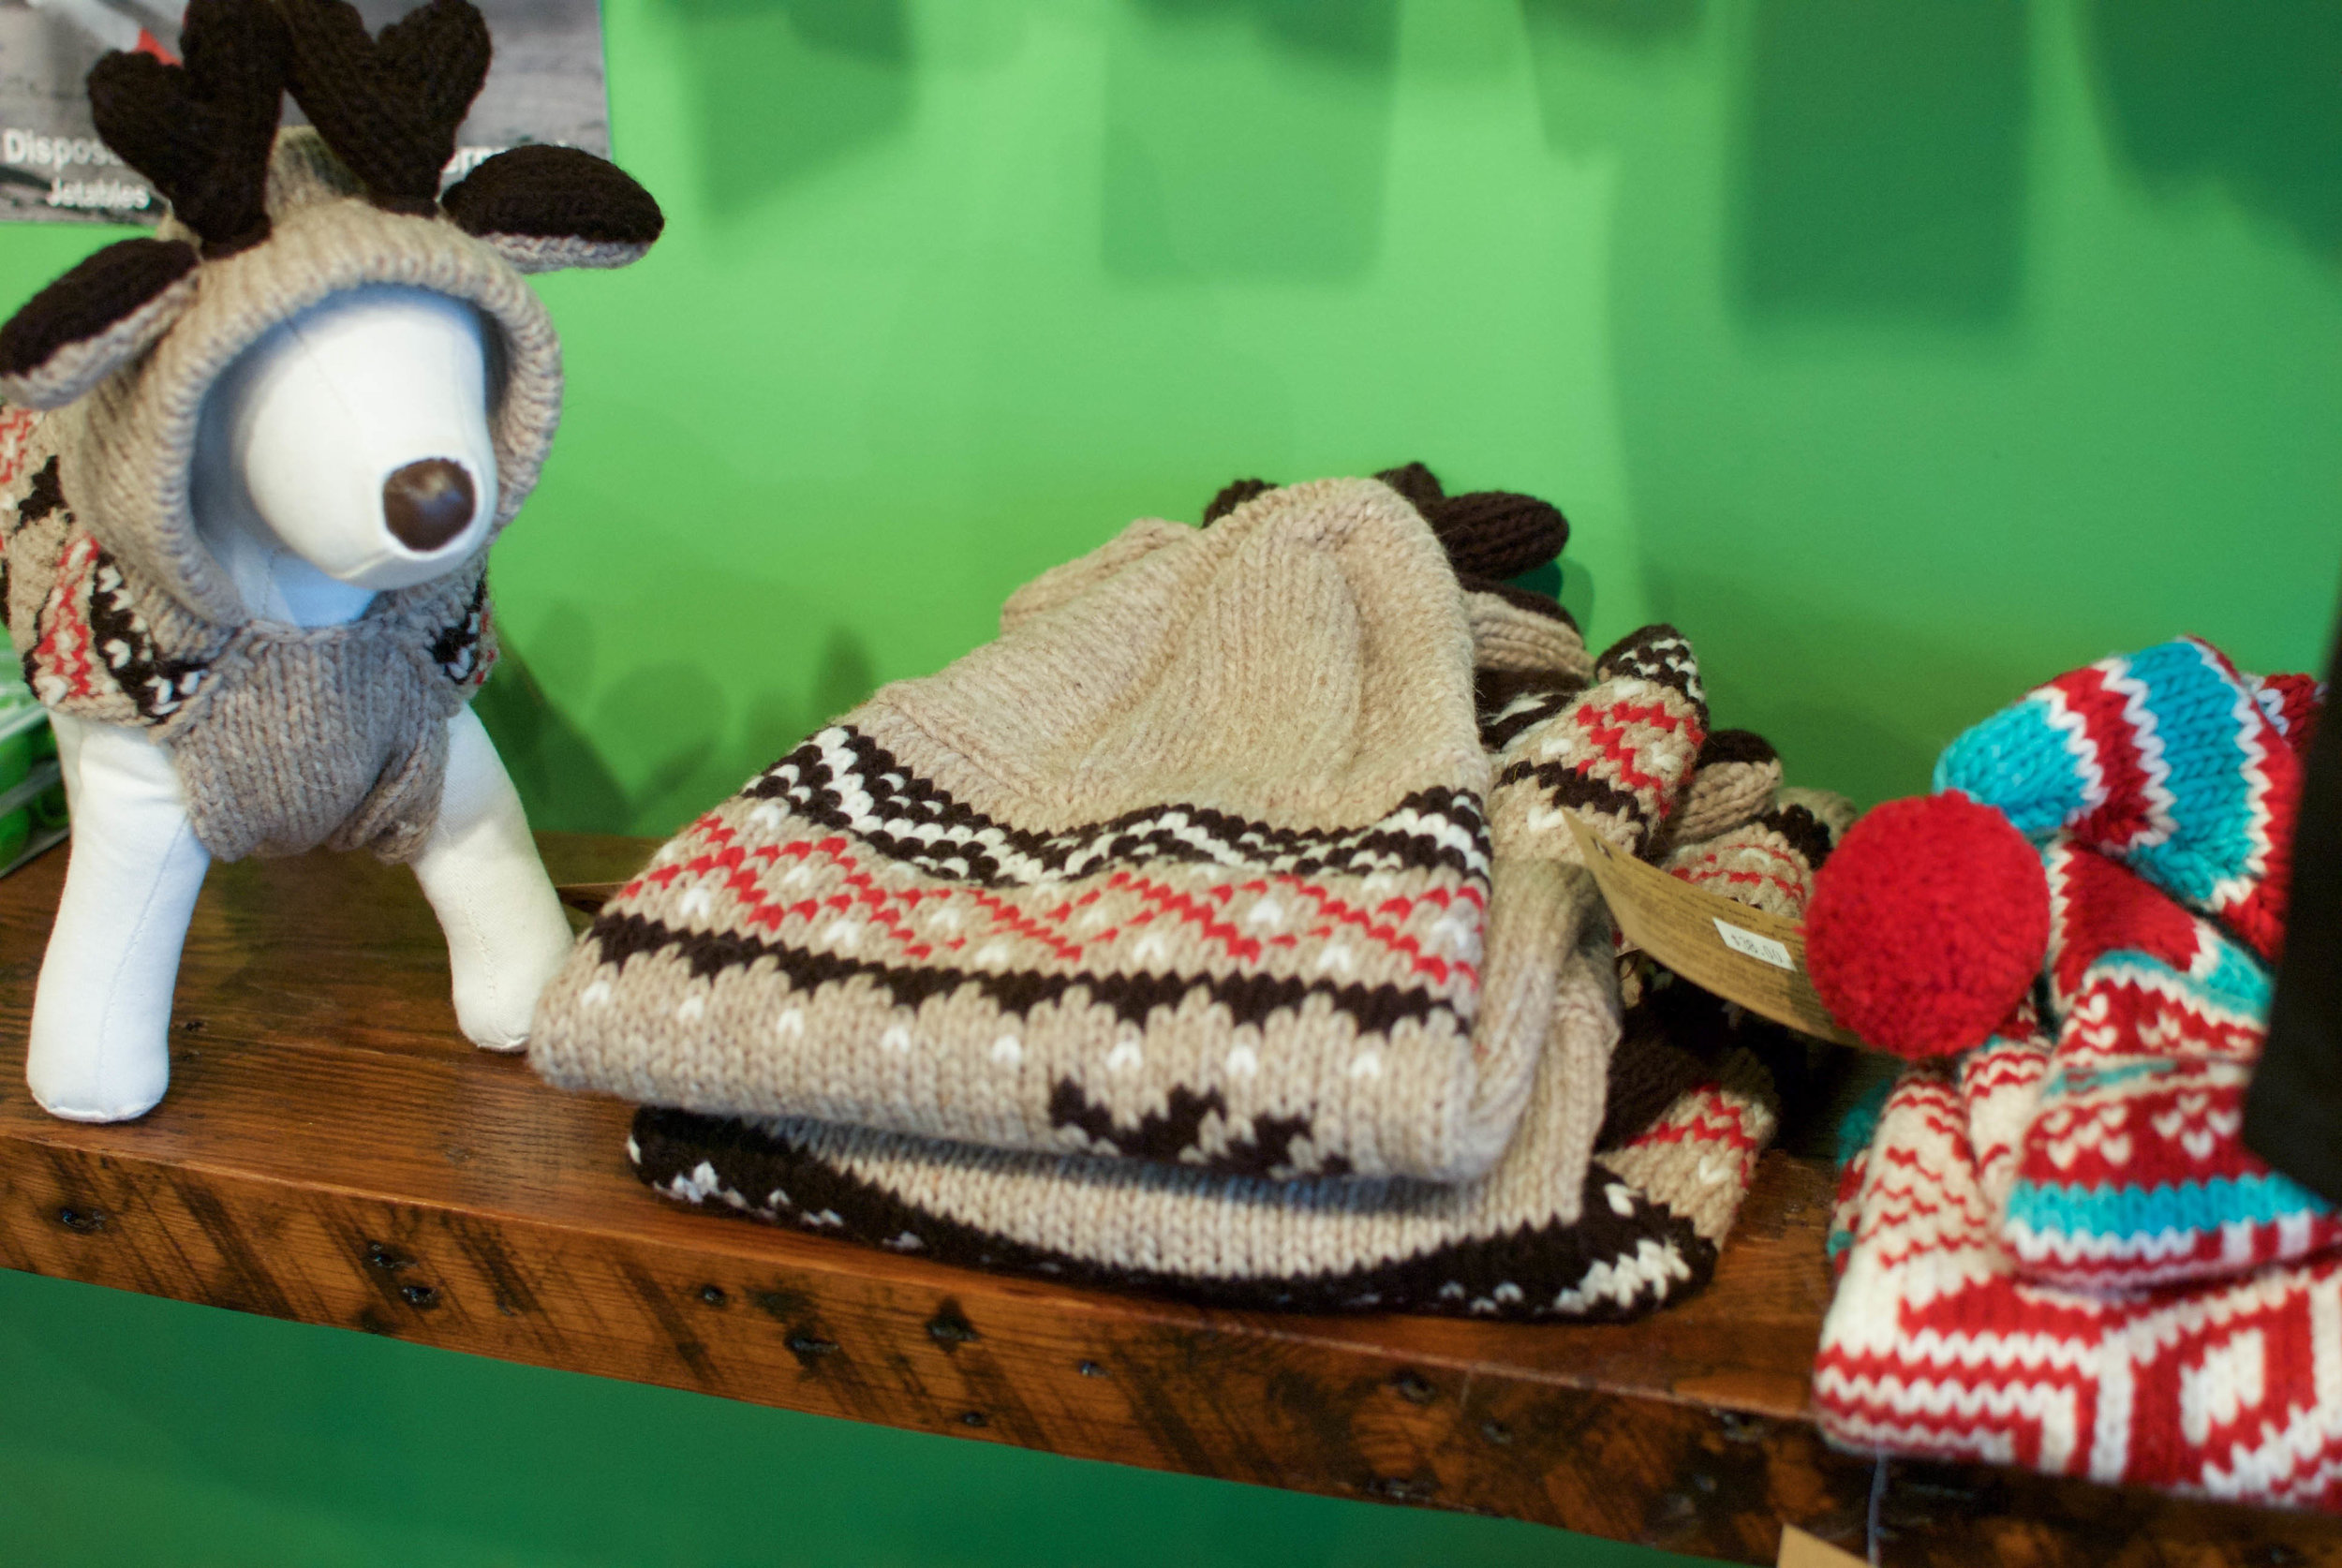 Paisley loves these sweaters. Hand knit, cozy goodness.